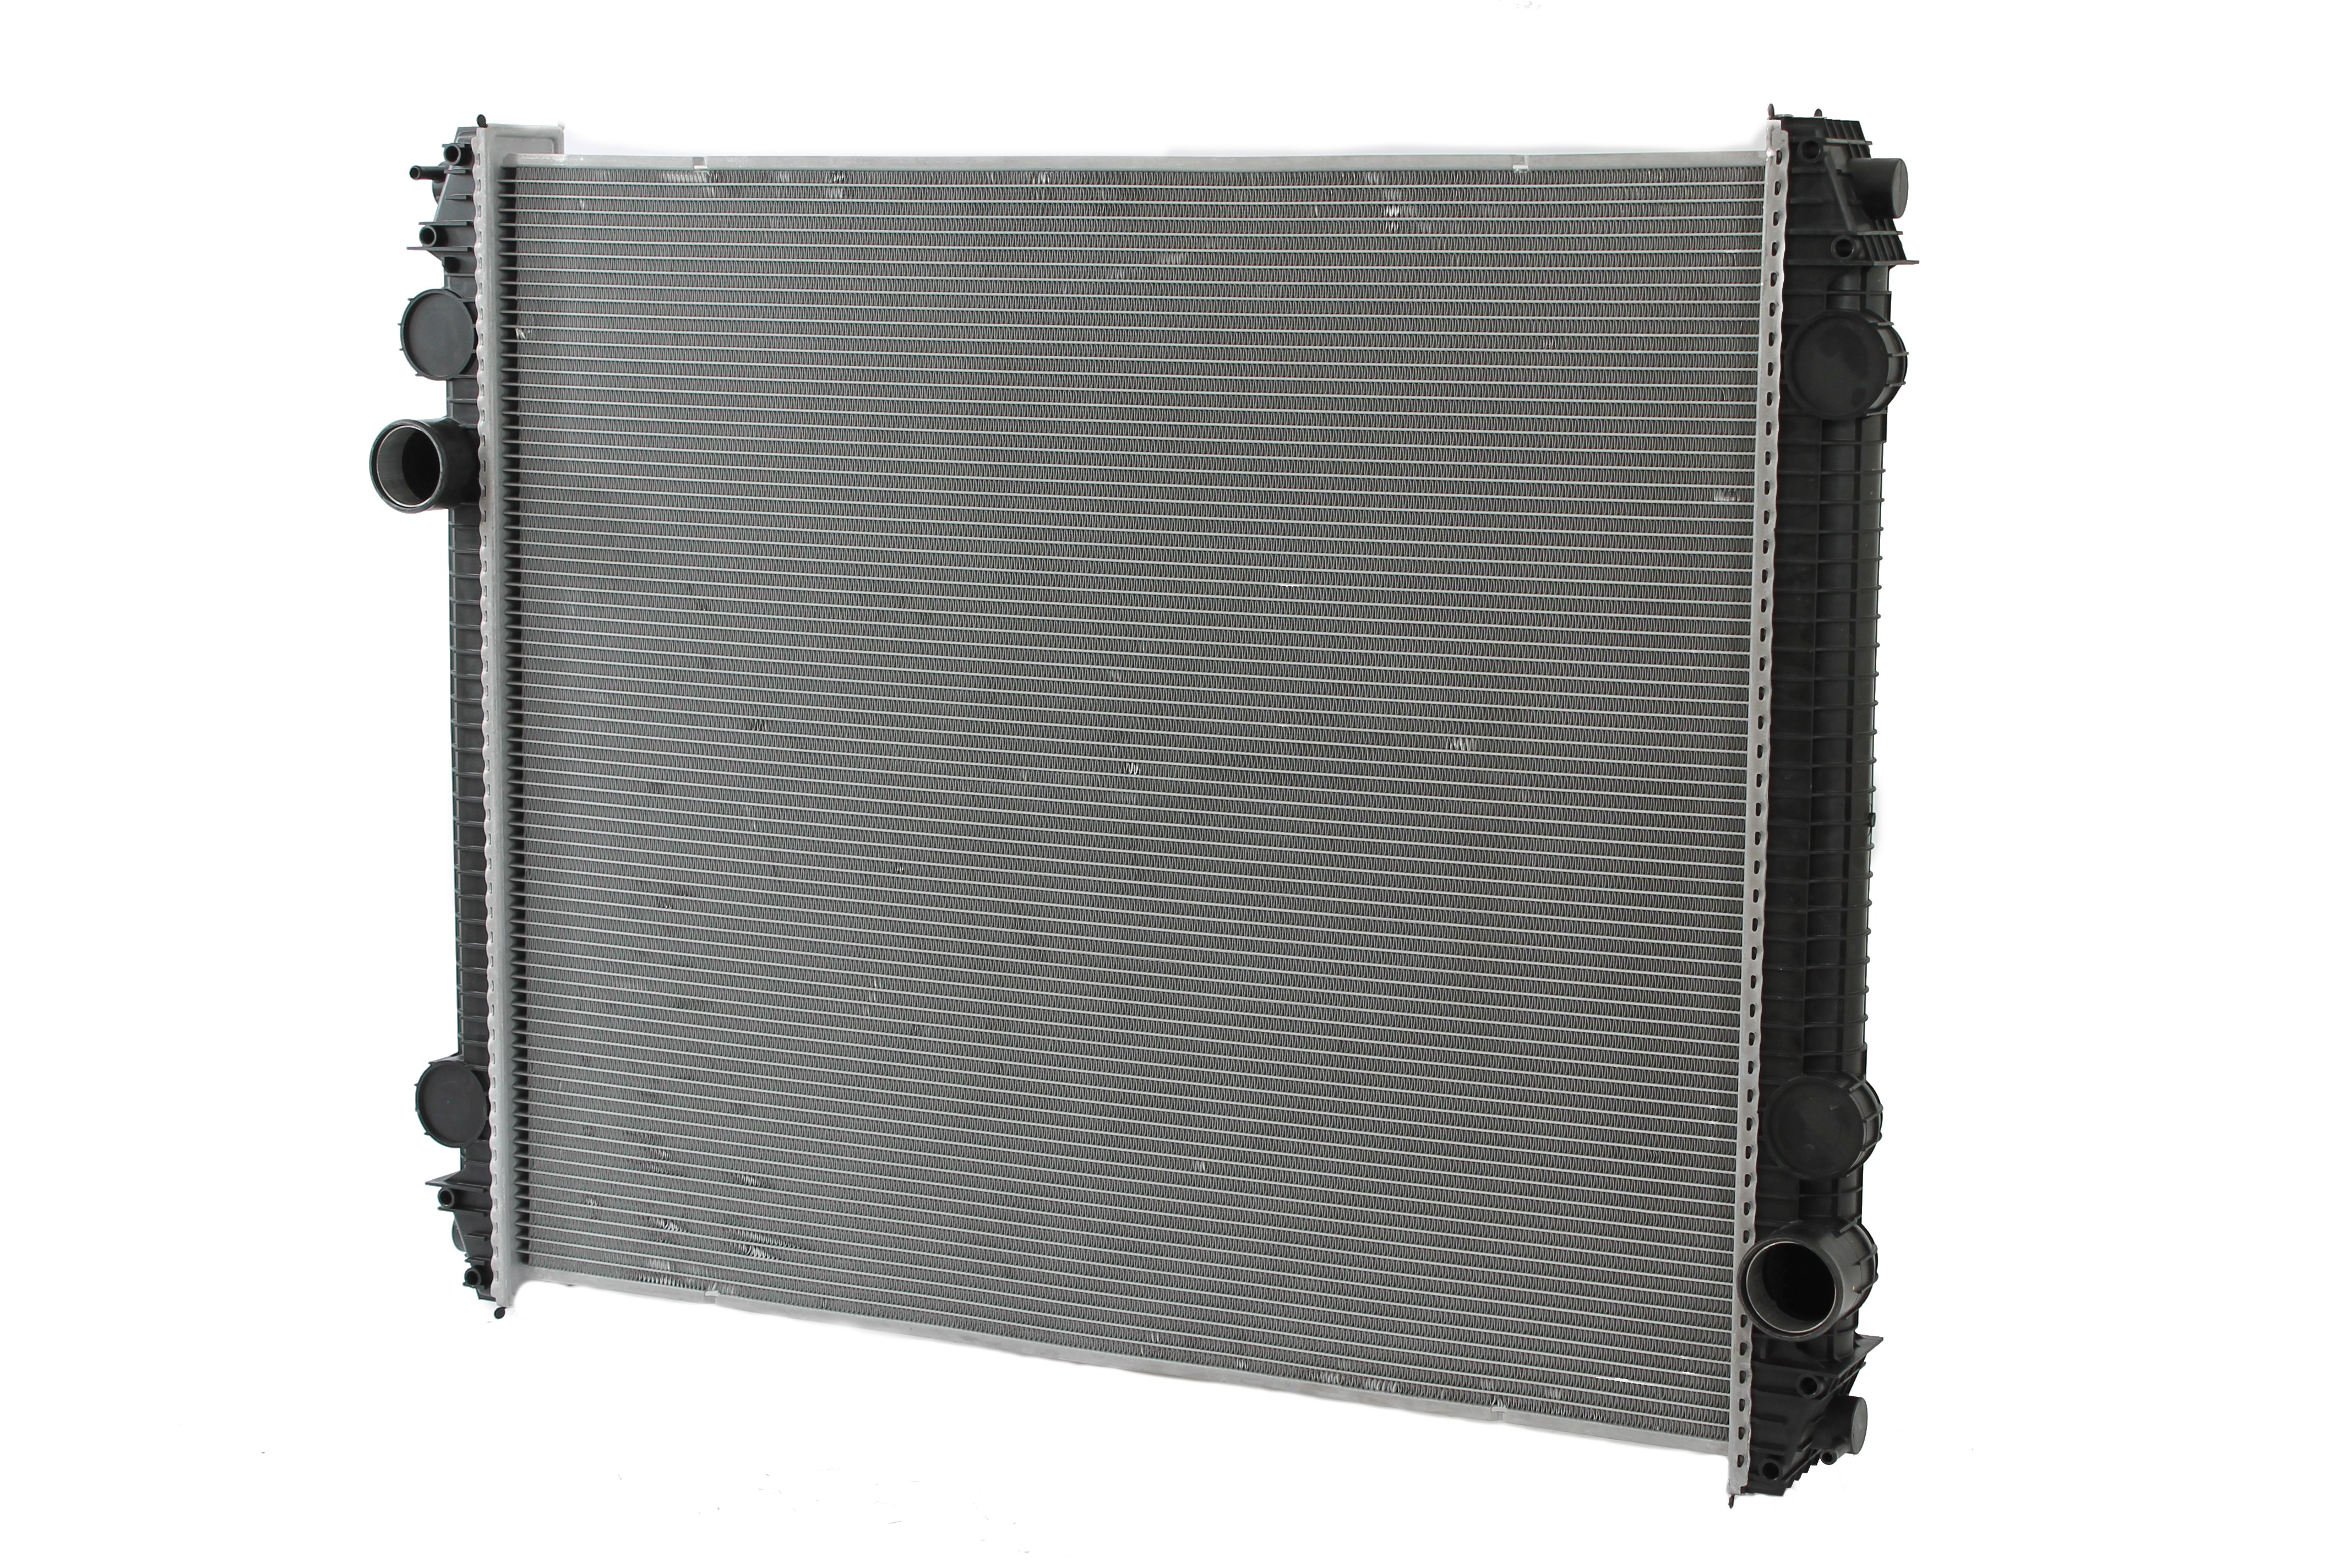 Freightliner Century American LeFrance Firetruck Radiator Angled View.